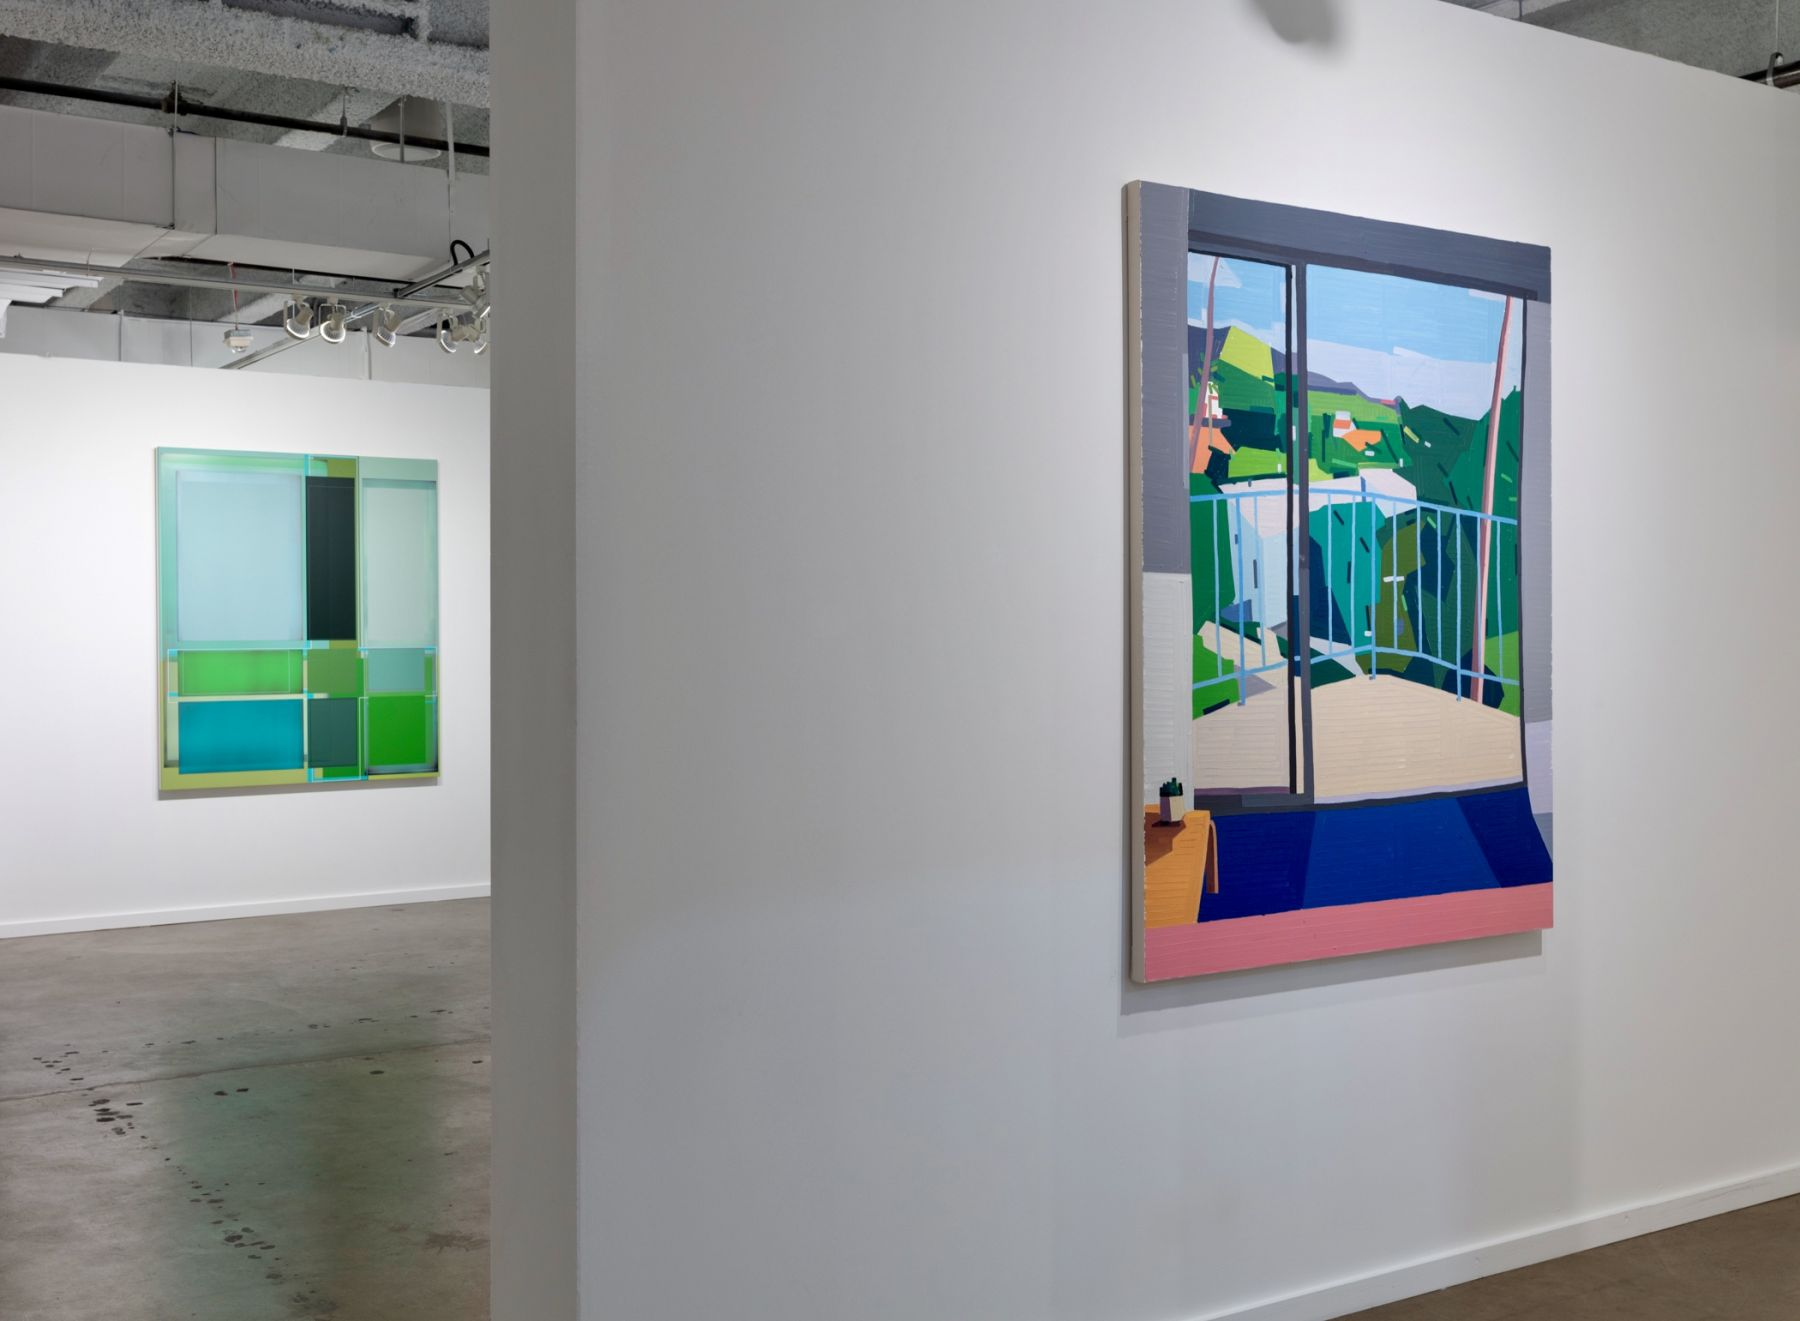 Installation view, Booth #C1, Miles McEnery Gallery, Dallas Art Fair 2019